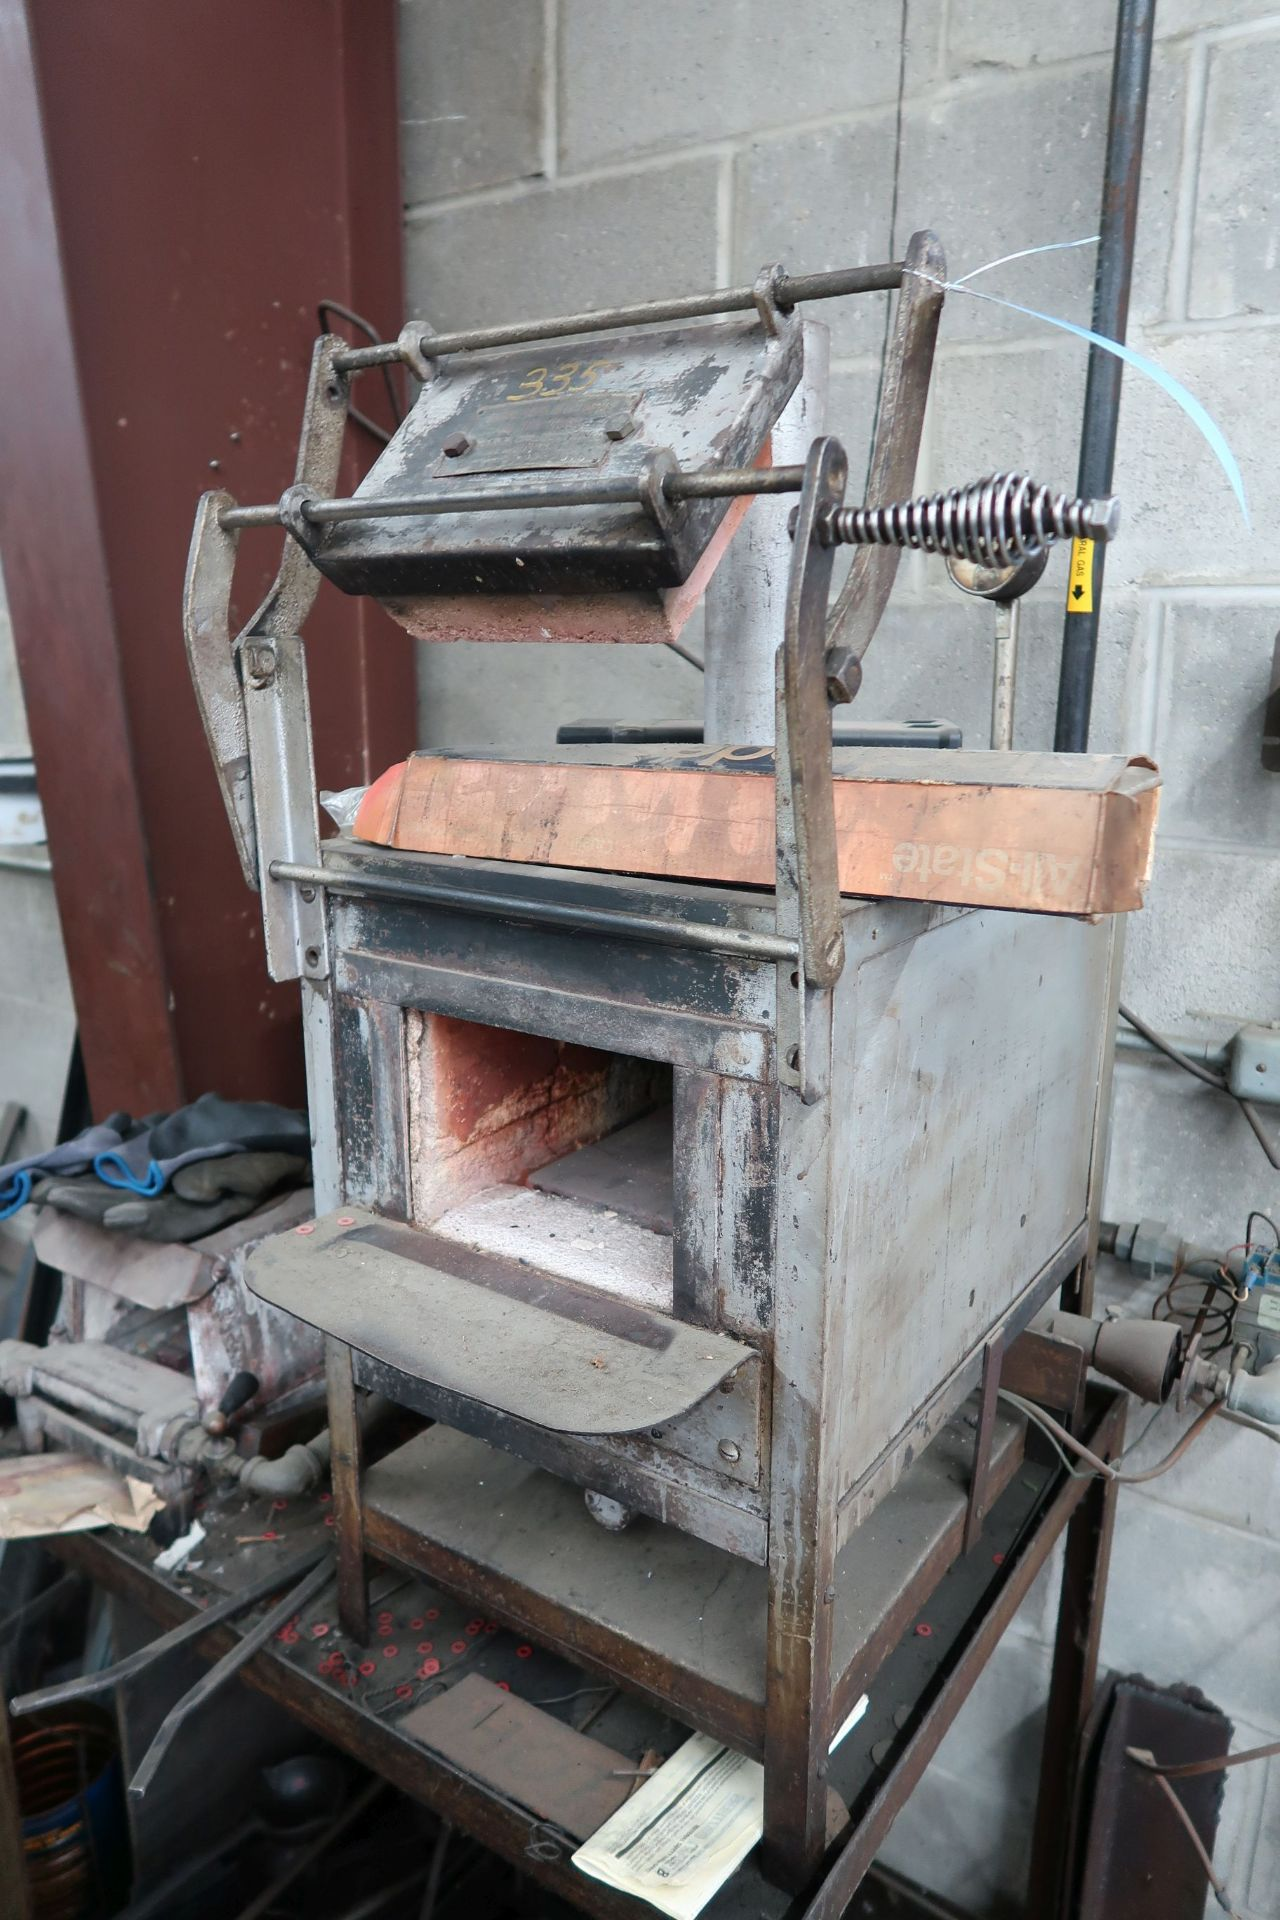 """KER & COMPANY NATURAL GAS OVEN; 7""""W X 5""""H X 15"""" DEEP, TO 2,000 DEGREES - Image 3 of 4"""